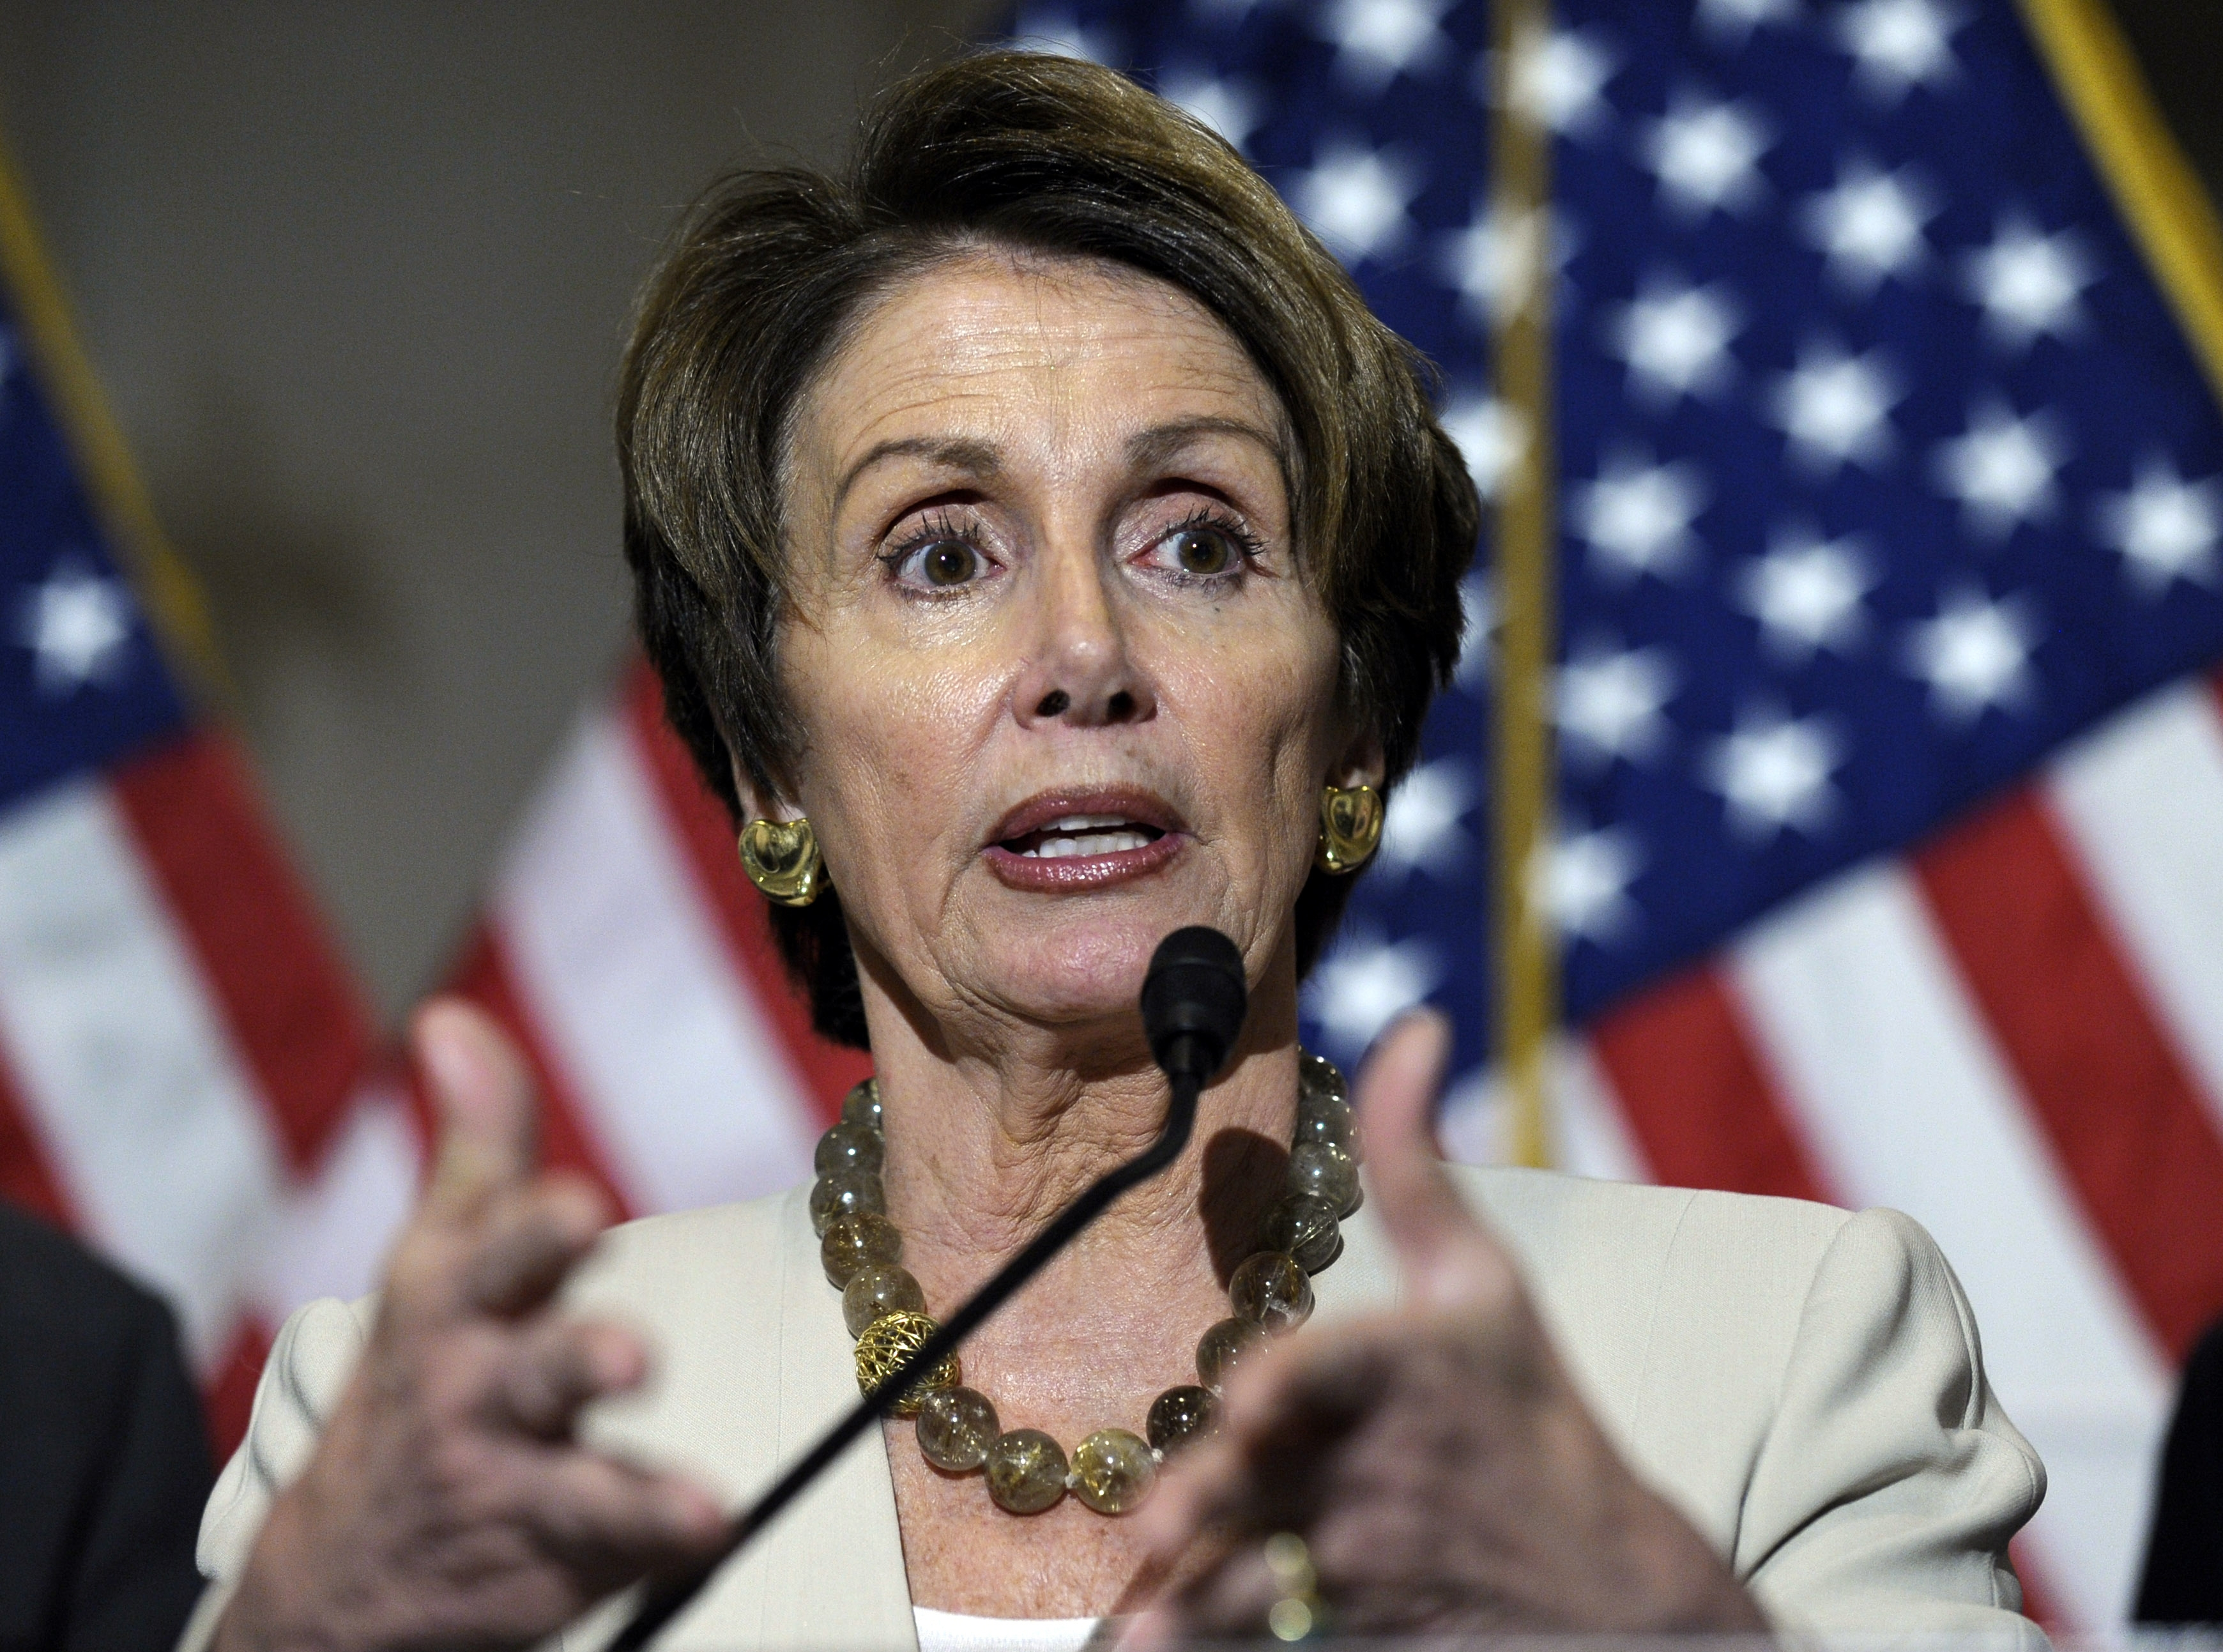 House Minority Leader Nancy Pelosi, D-Calif., insists Democrats are united behind the Affordable Care Act.